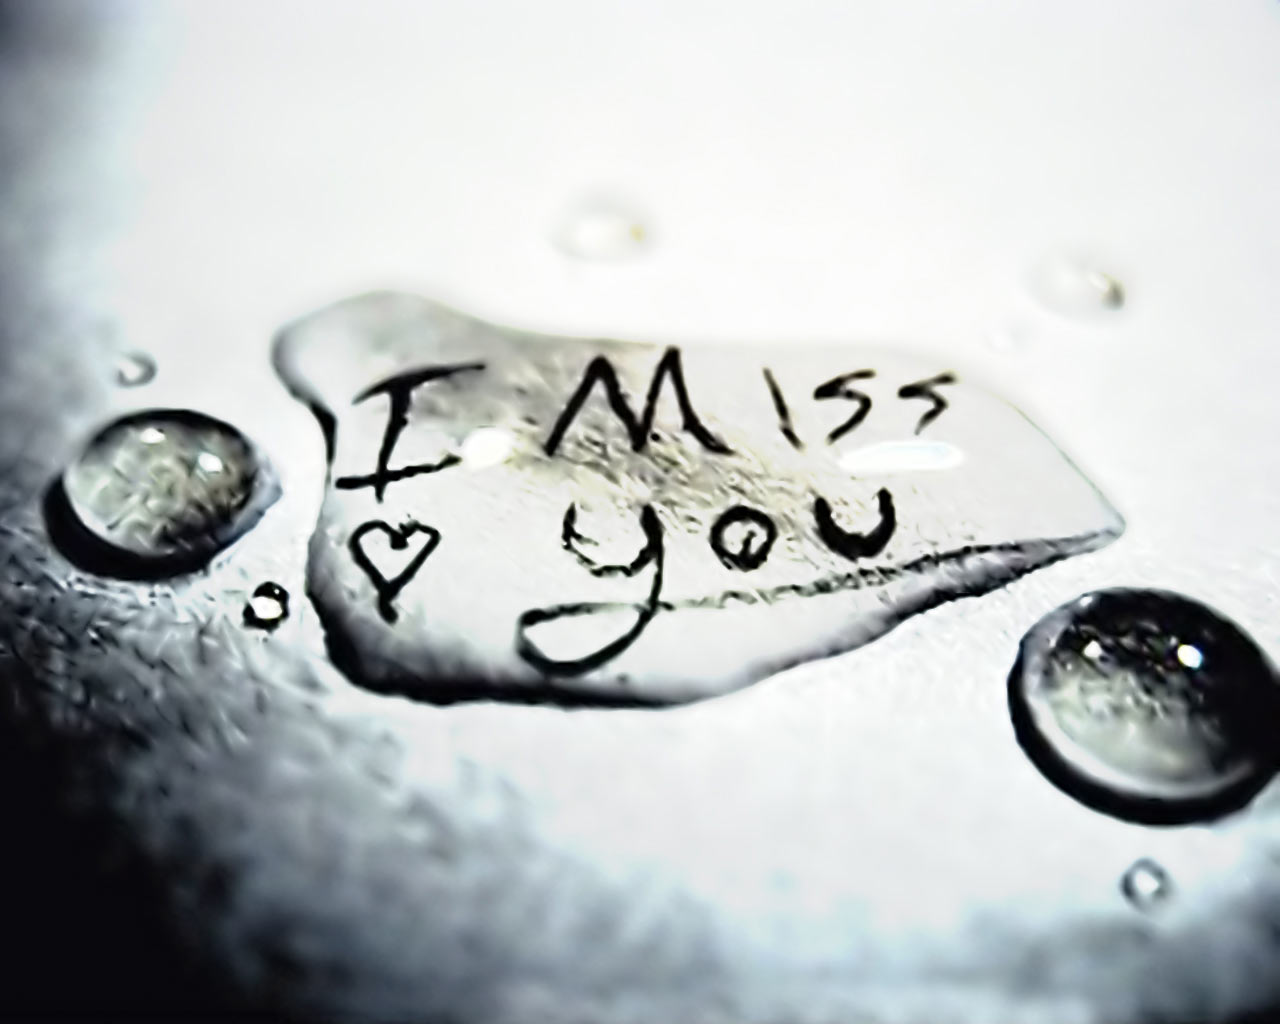 I Miss U 2 Wallpaper   Awesome Wallpapers